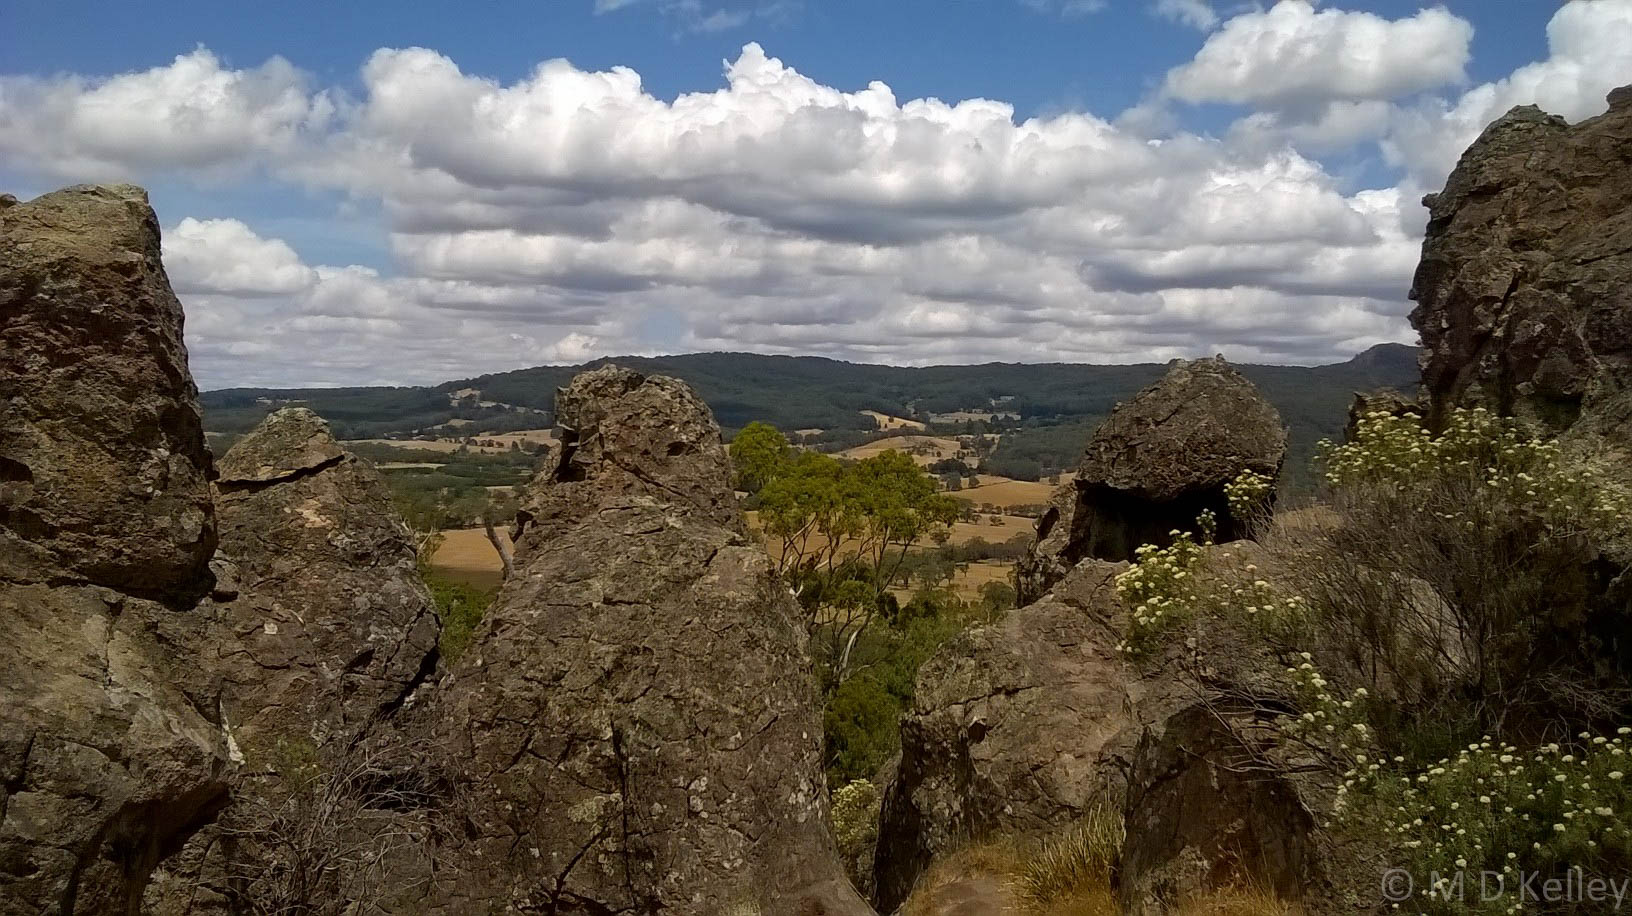 Summit rocks at Hanging Rock, Victoria, Windows Phone.jpg